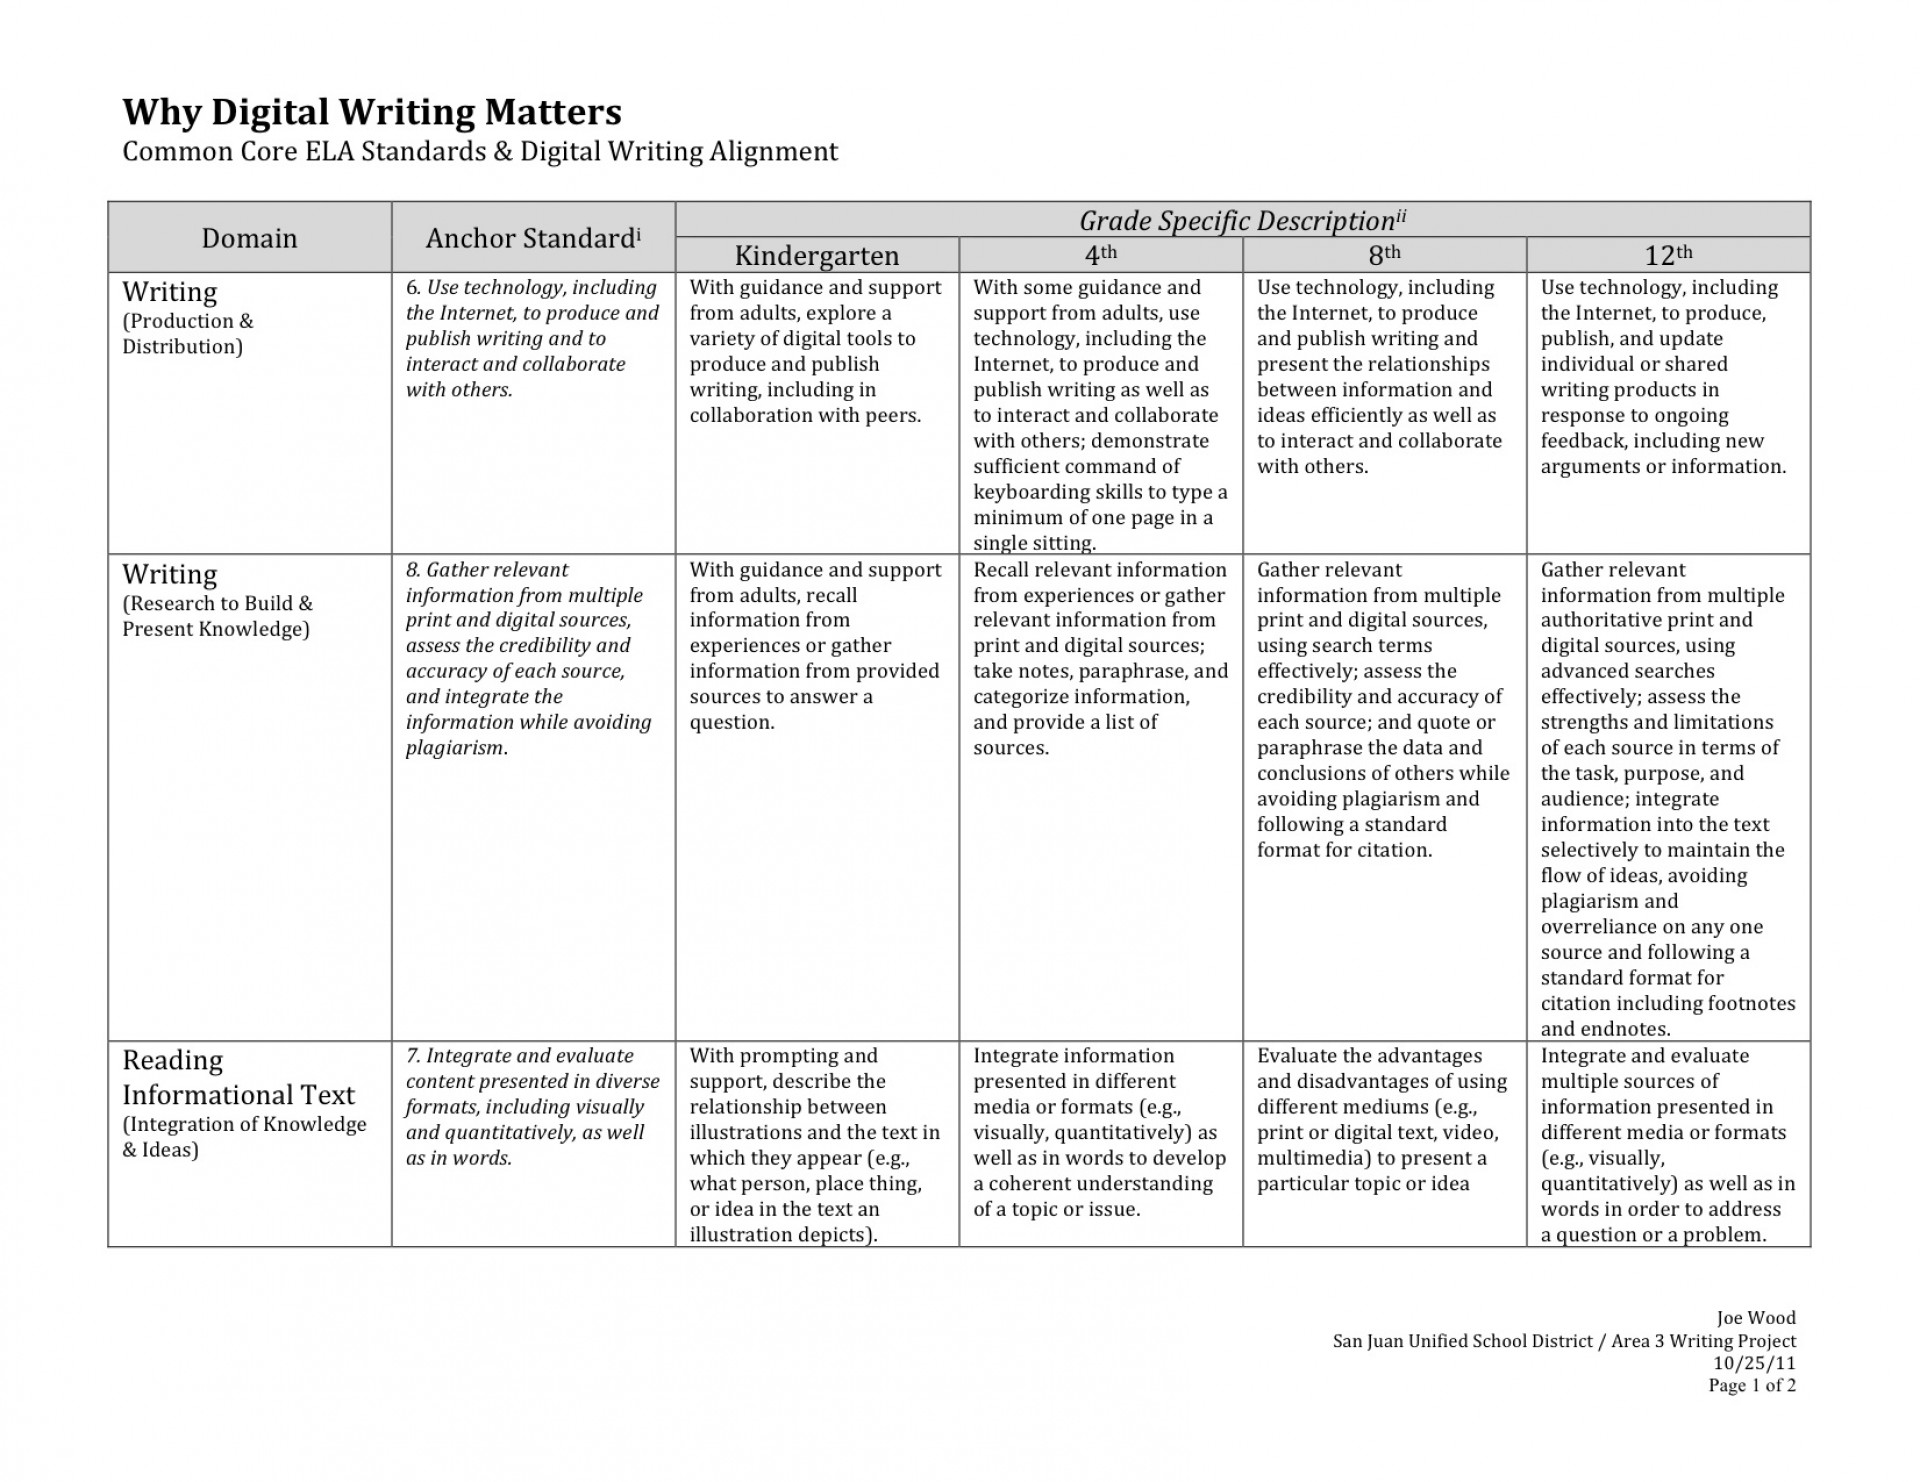 003 Middle School Research Paper Rubric Why Digital Writing Matters According To The Common Core Ela Dreaded Science Fair 1920